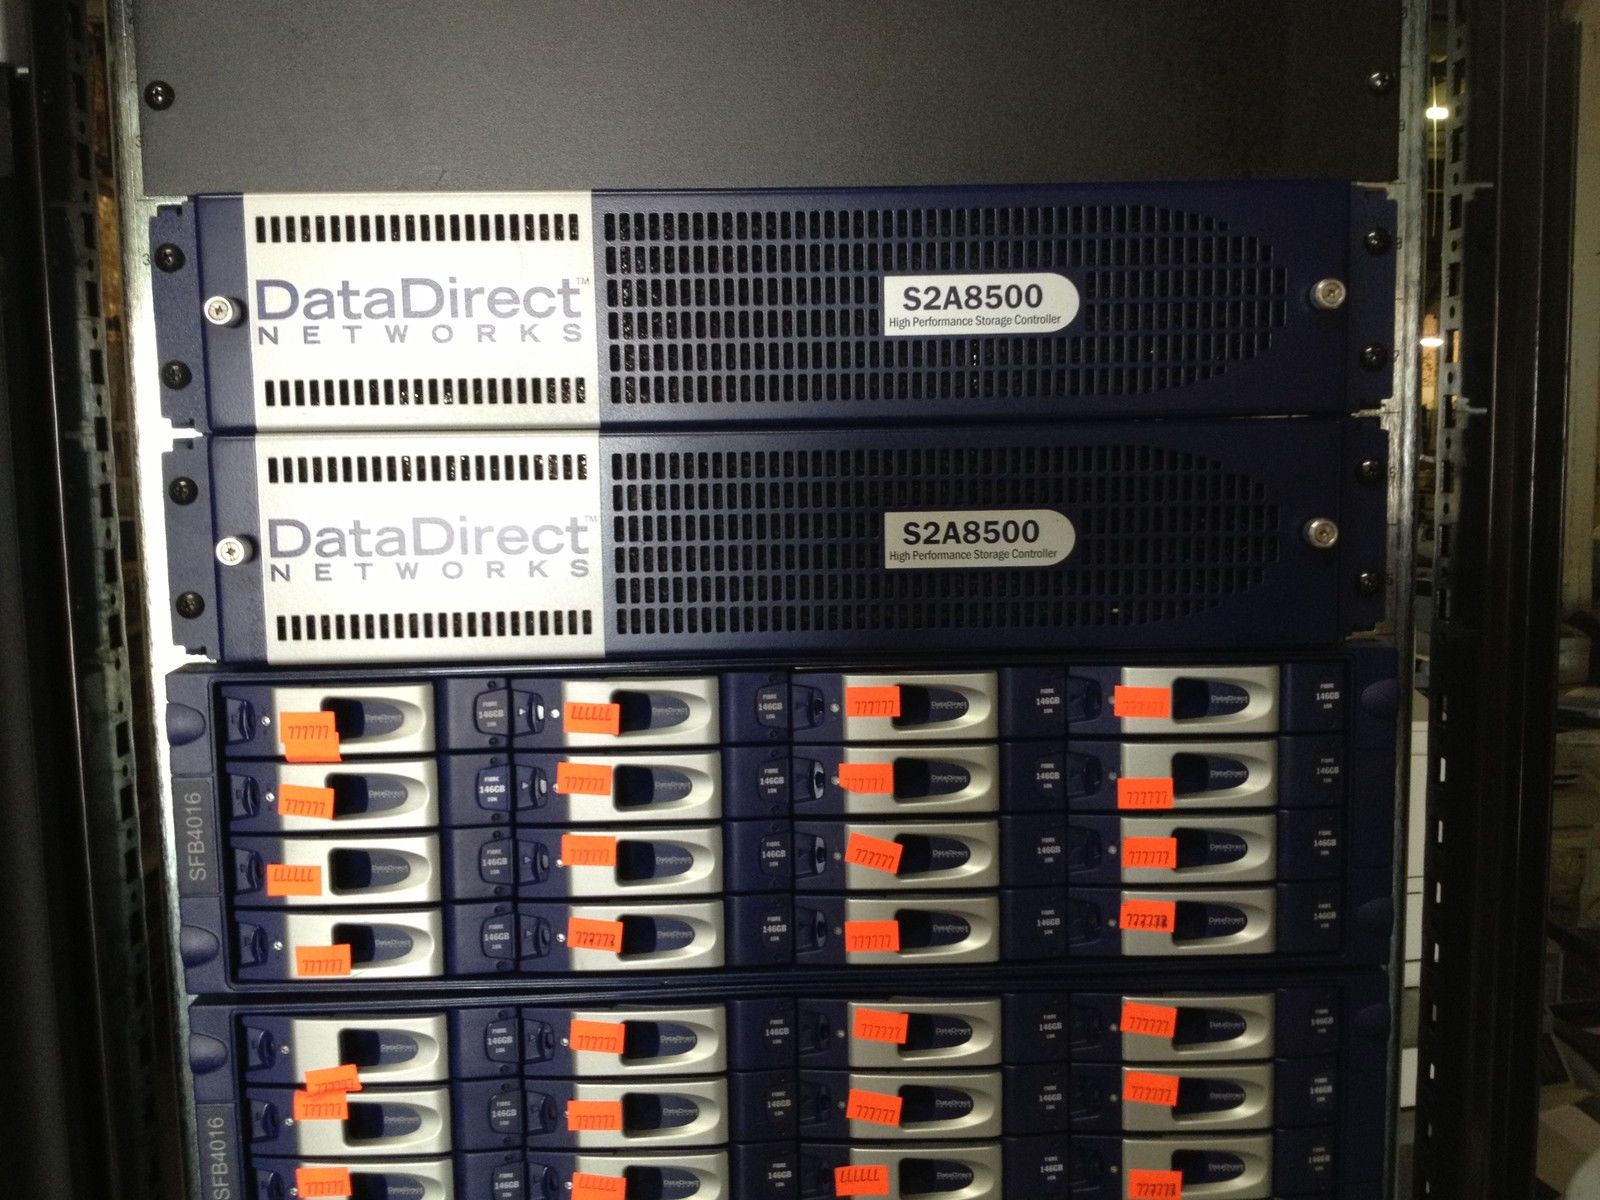 Datadirect Networks With 4 S2a8500 Controller Amp 10 Storage